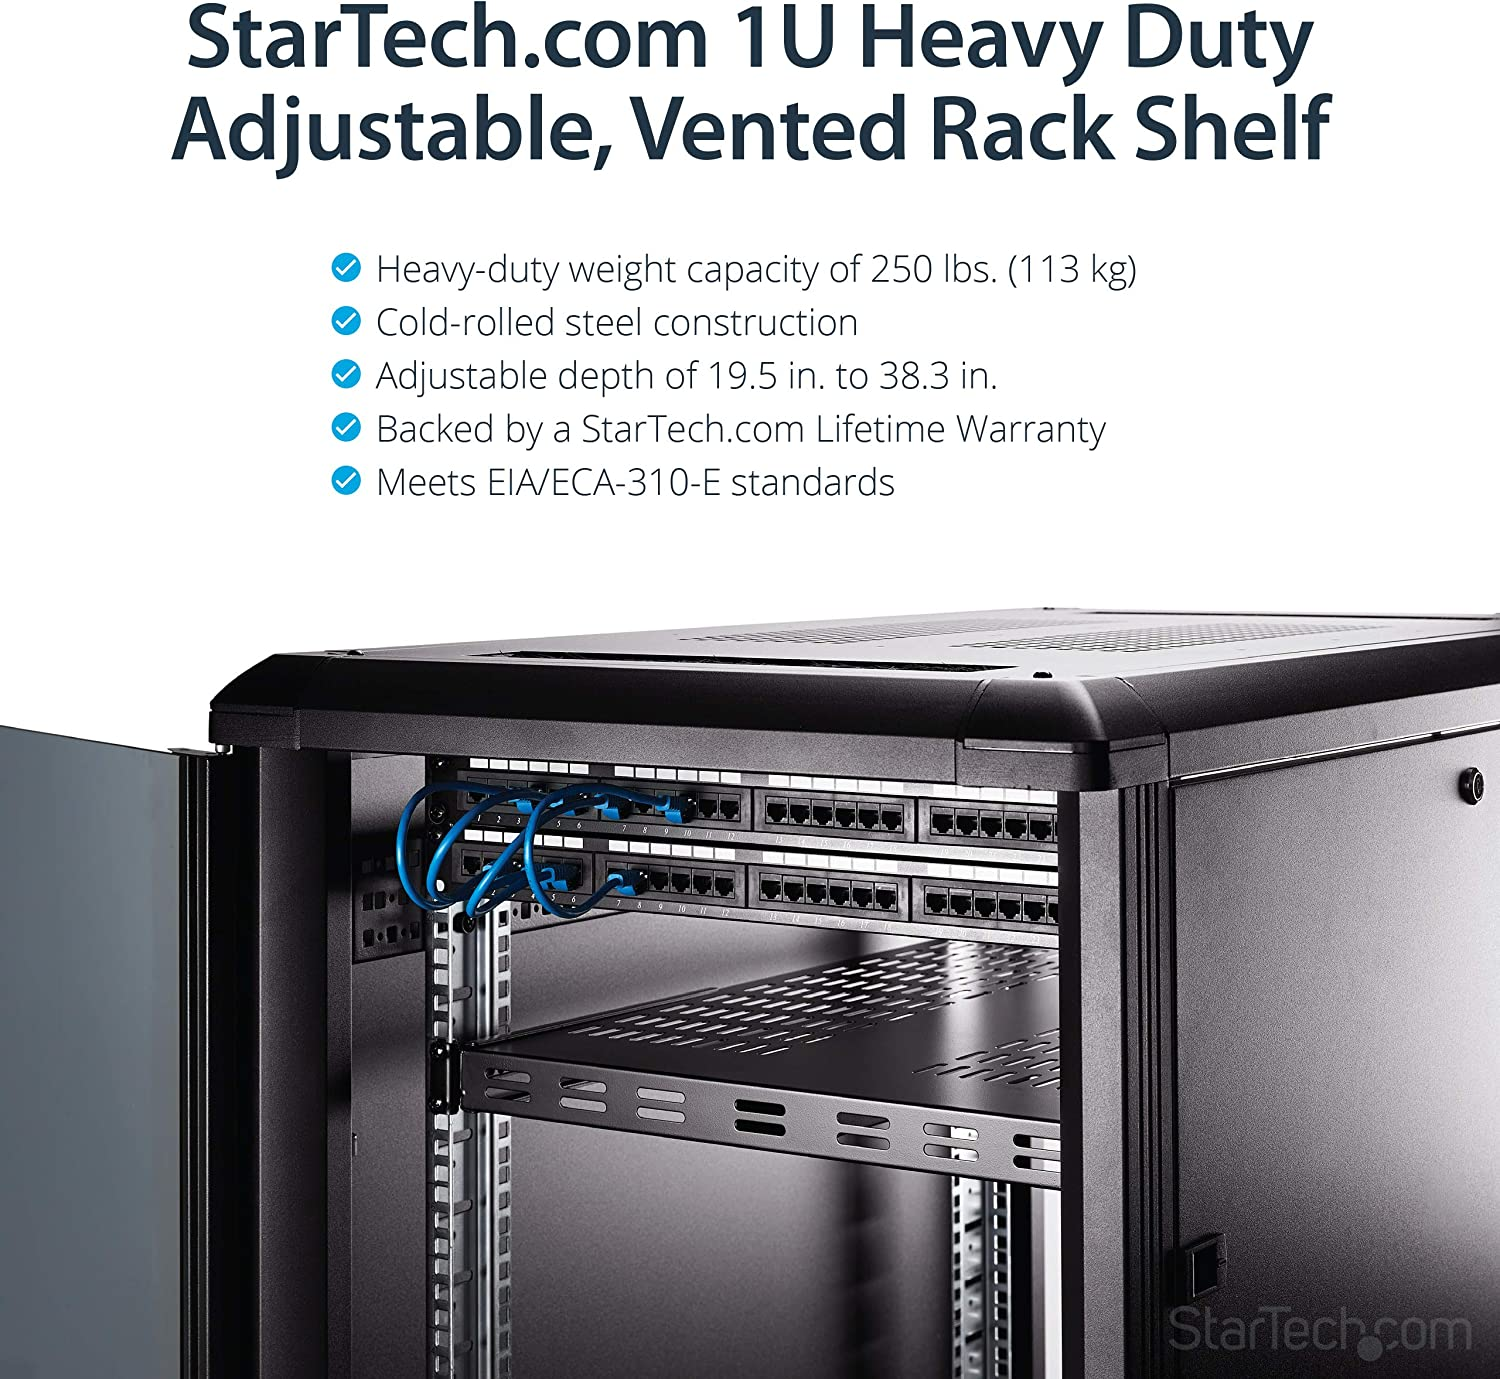 175lbs StarTech.com 1U Adjustable Server Rack Mount Shelf Black Data /& Network Equipment Rack 19.5 to 38in Deep Universal Tray for 19 AV ADJSHELFHD